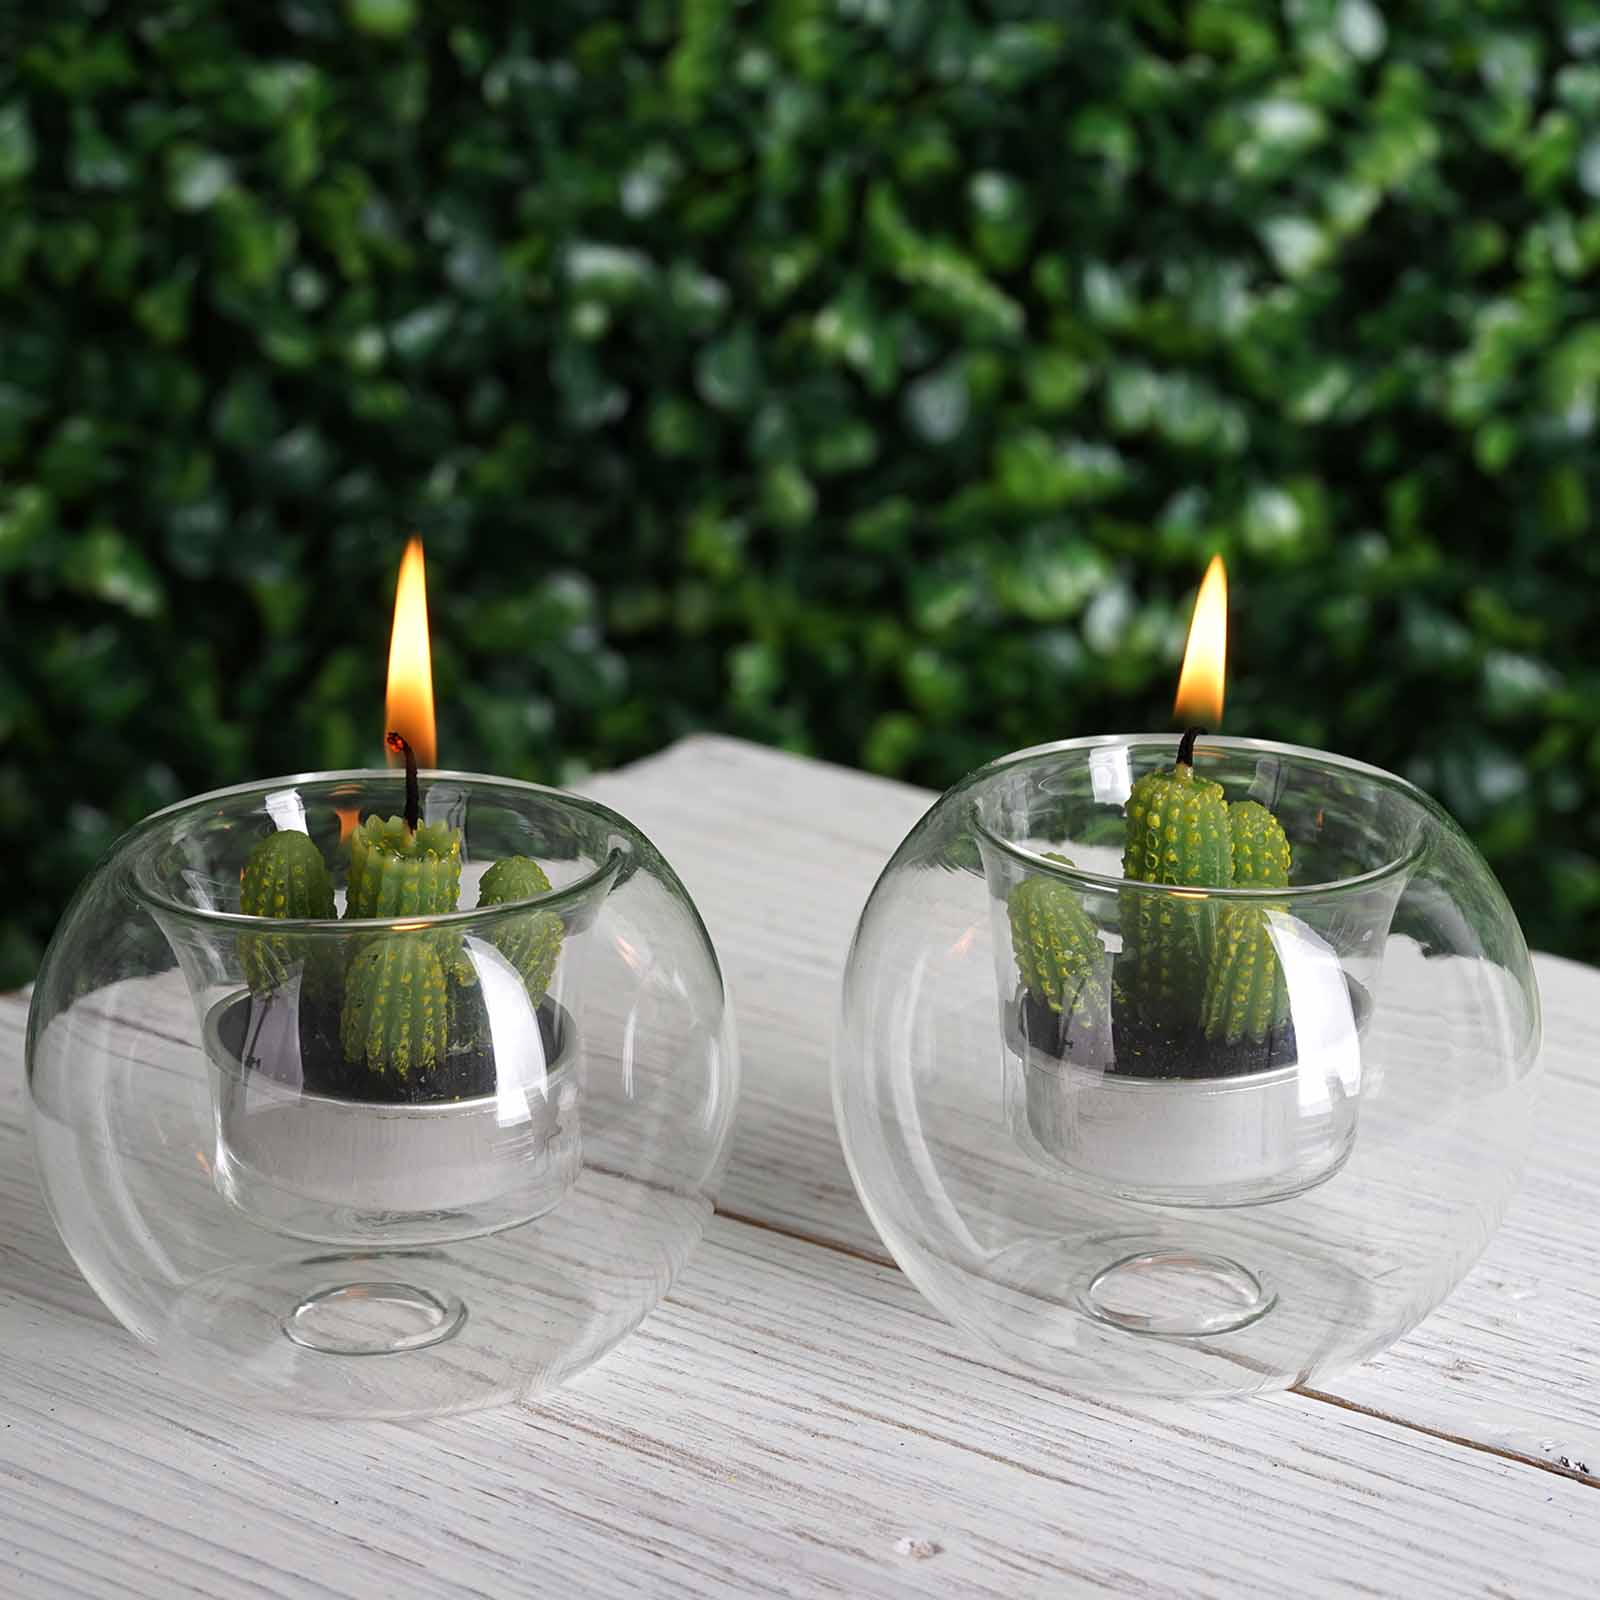 24 Pcs Clear Glass Globe Votive Candle Holders For Wedding Party Centerpieces Ebay